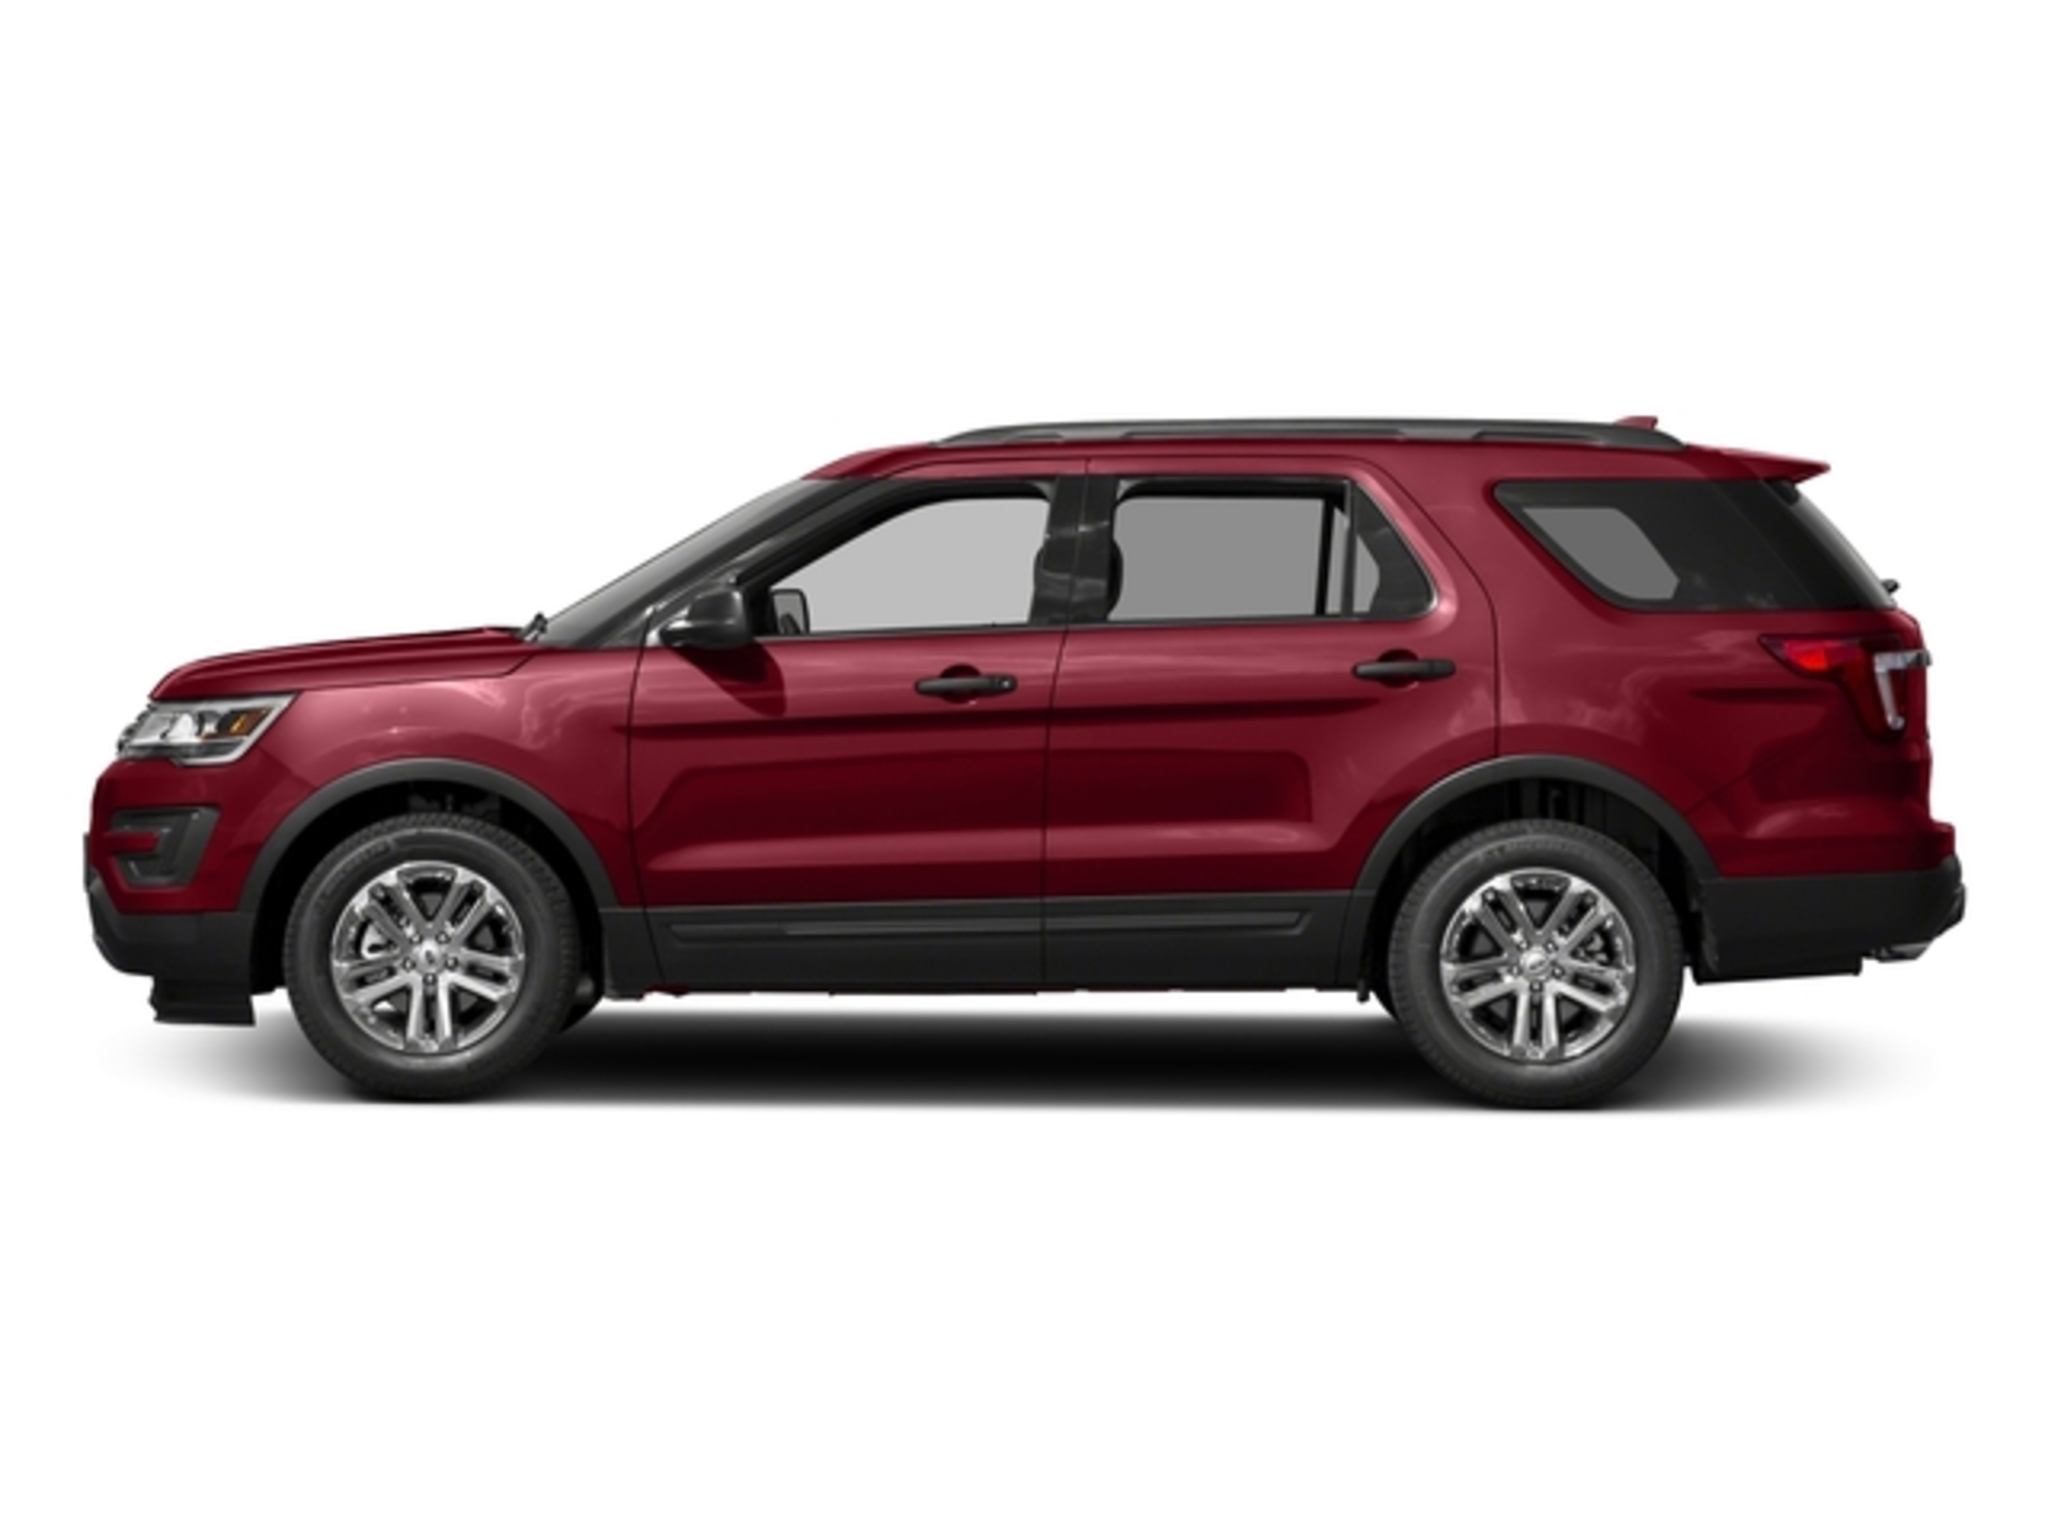 2016 Ford Explorer Compare Prices Trims Options Specs